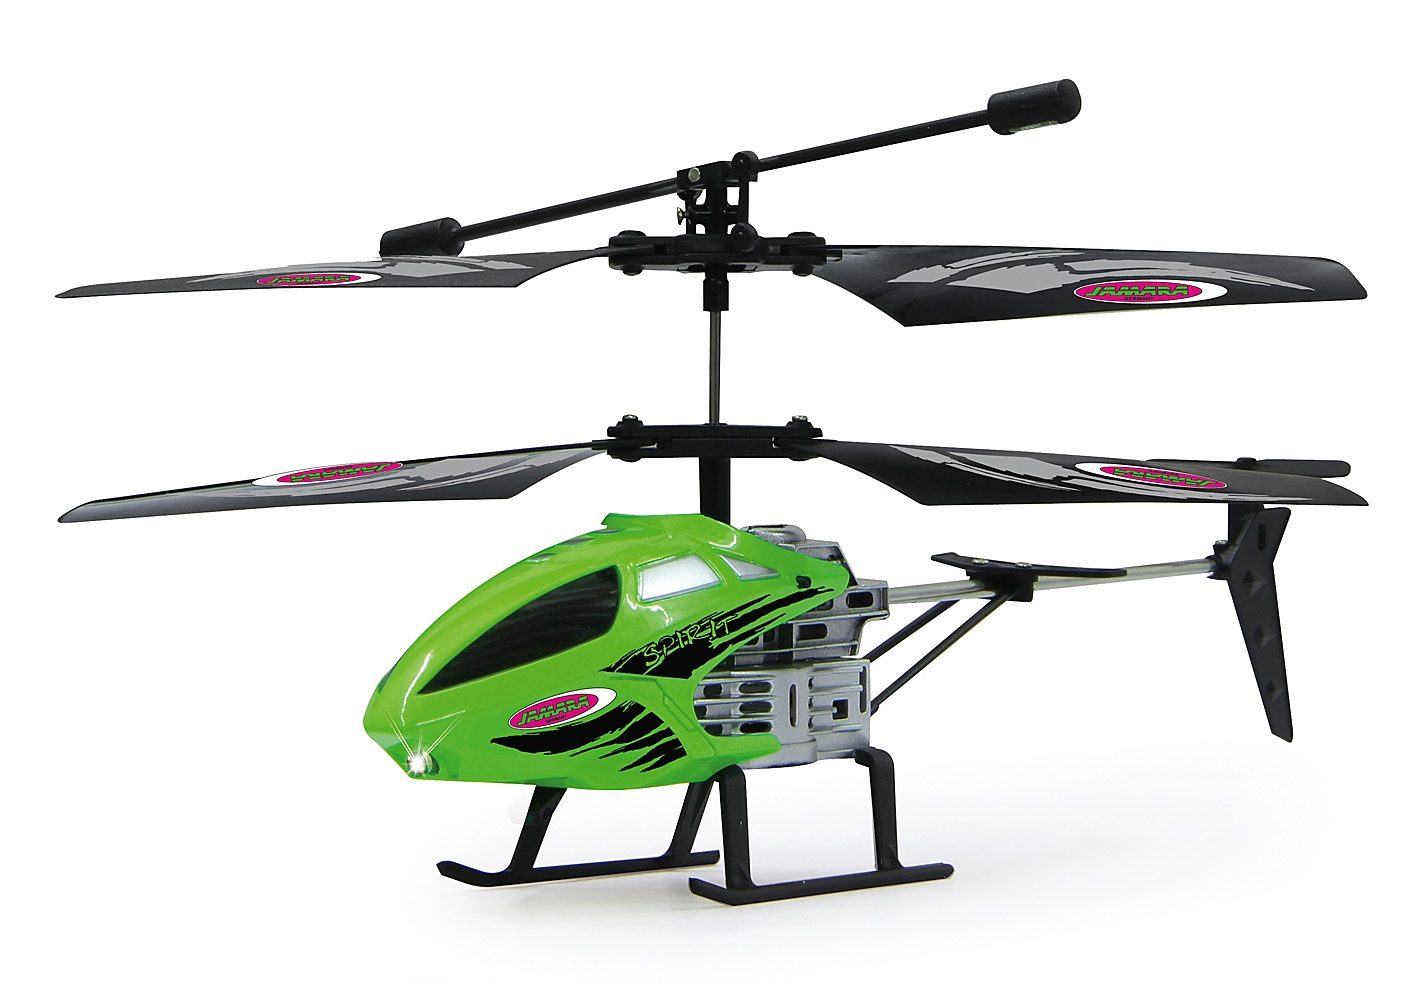 JAMARA RC Helikopter, »Spirit«